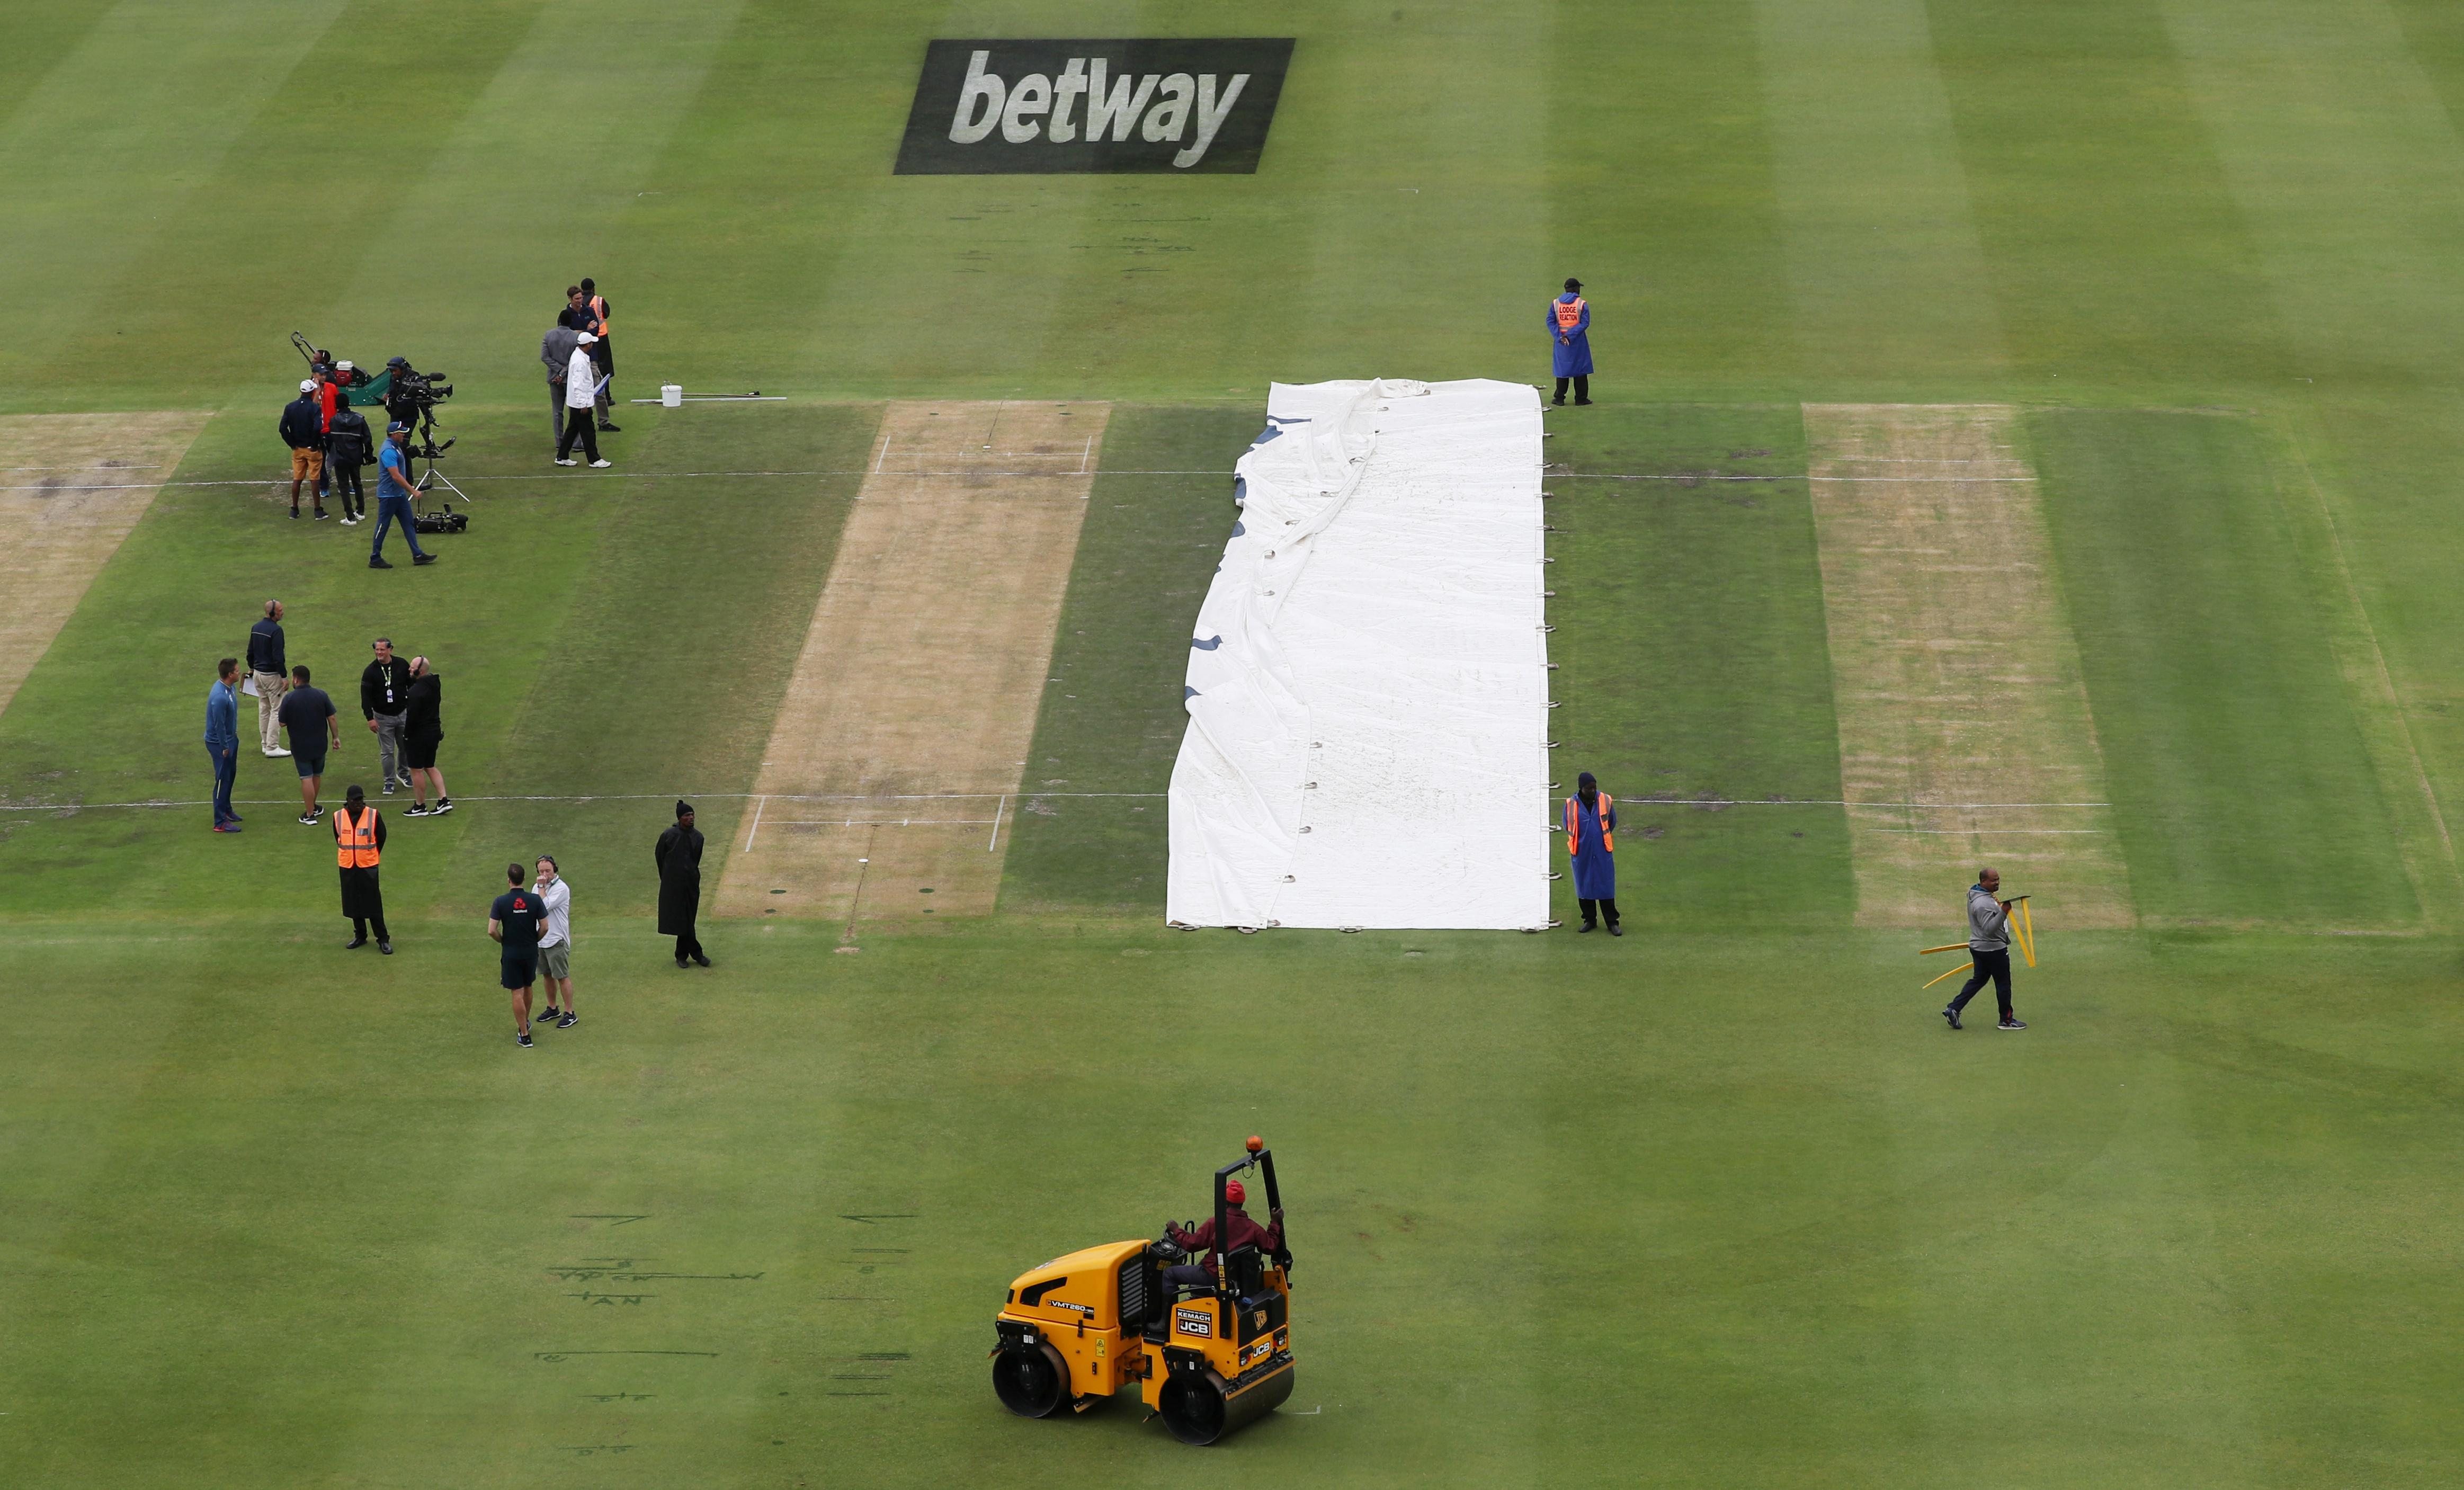 England on top with bat and ball as South Africa struggle